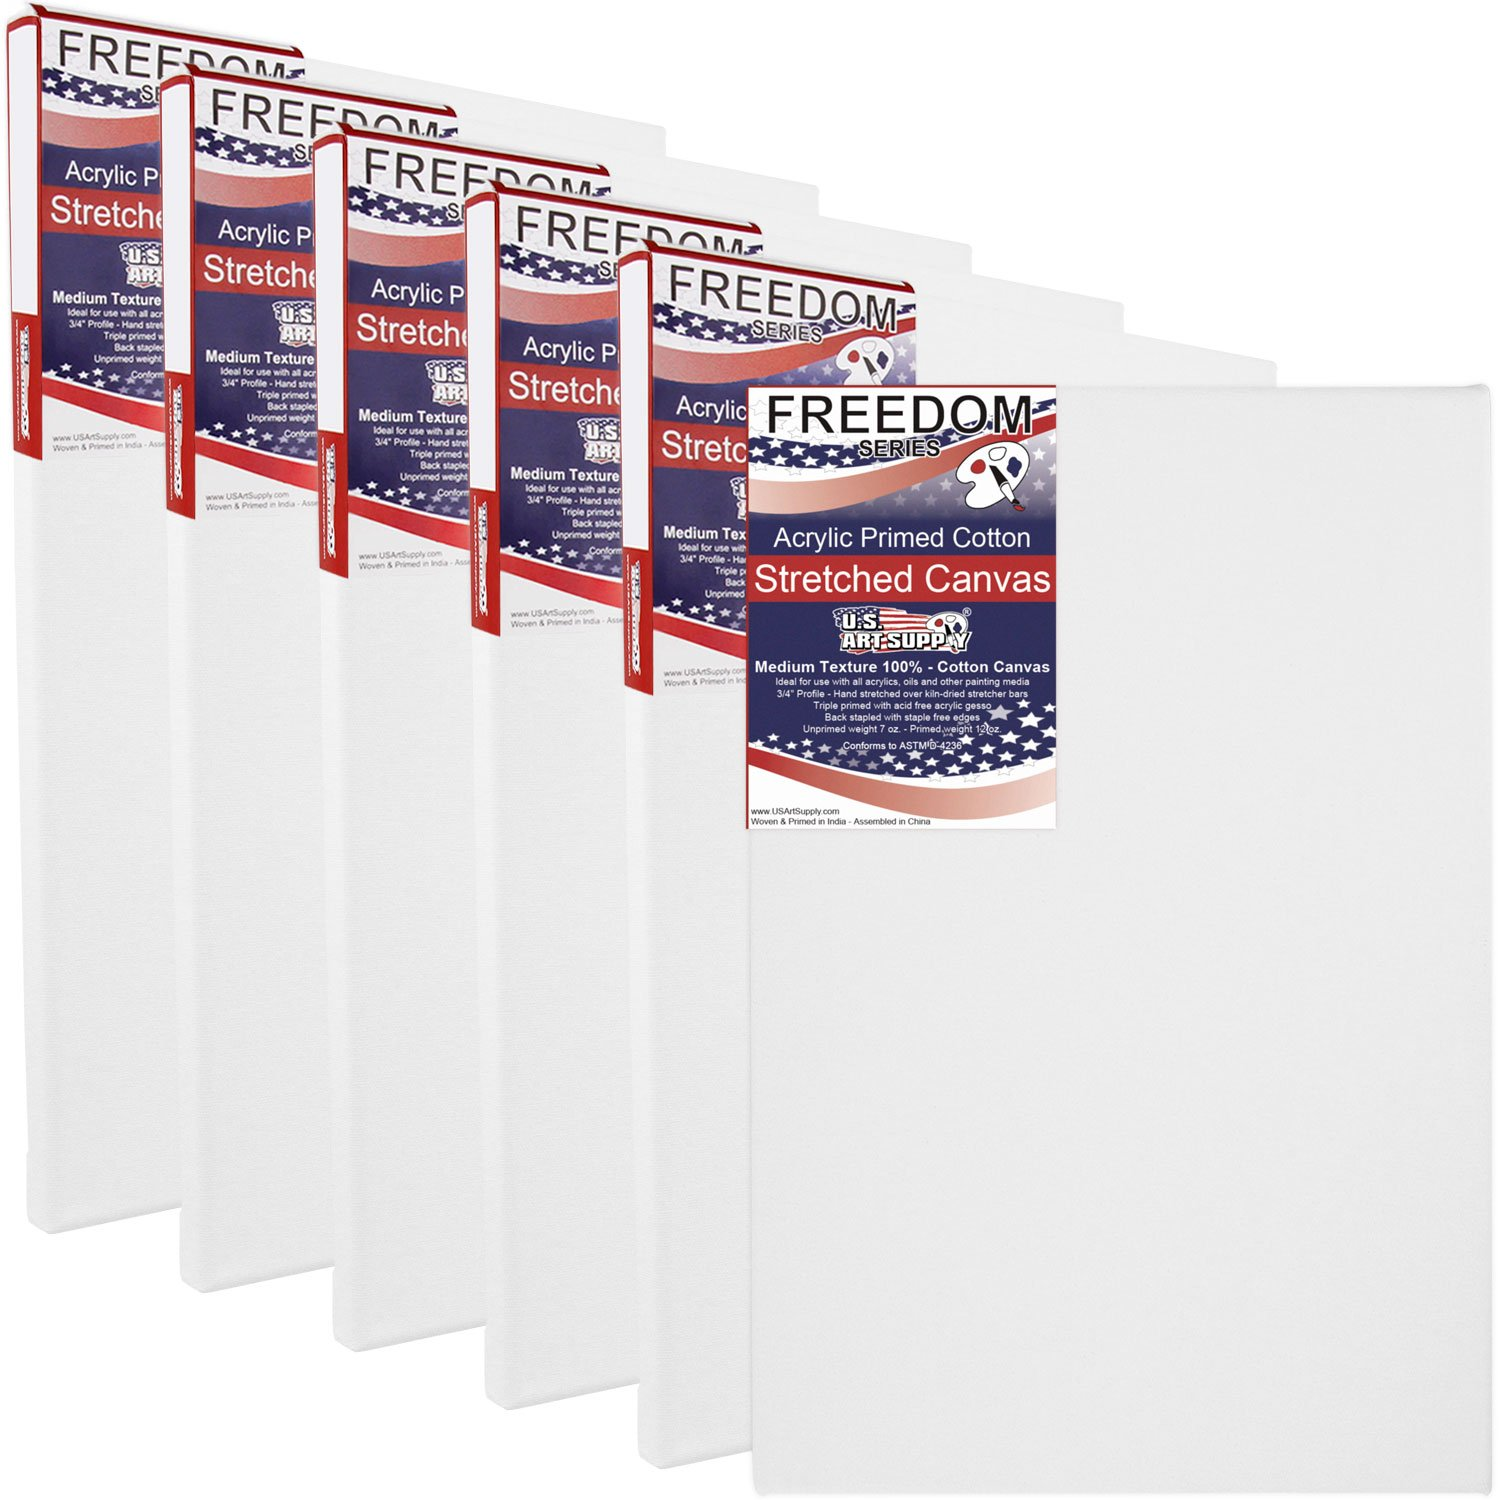 US Art Supply 18 x 24 Inch Professional Quality Acid-Free Stretched Canvas 6-Pack - 3/4 Profile 12 Ounce Primed Gesso - (1 Full Case of 6 Single Canvases)